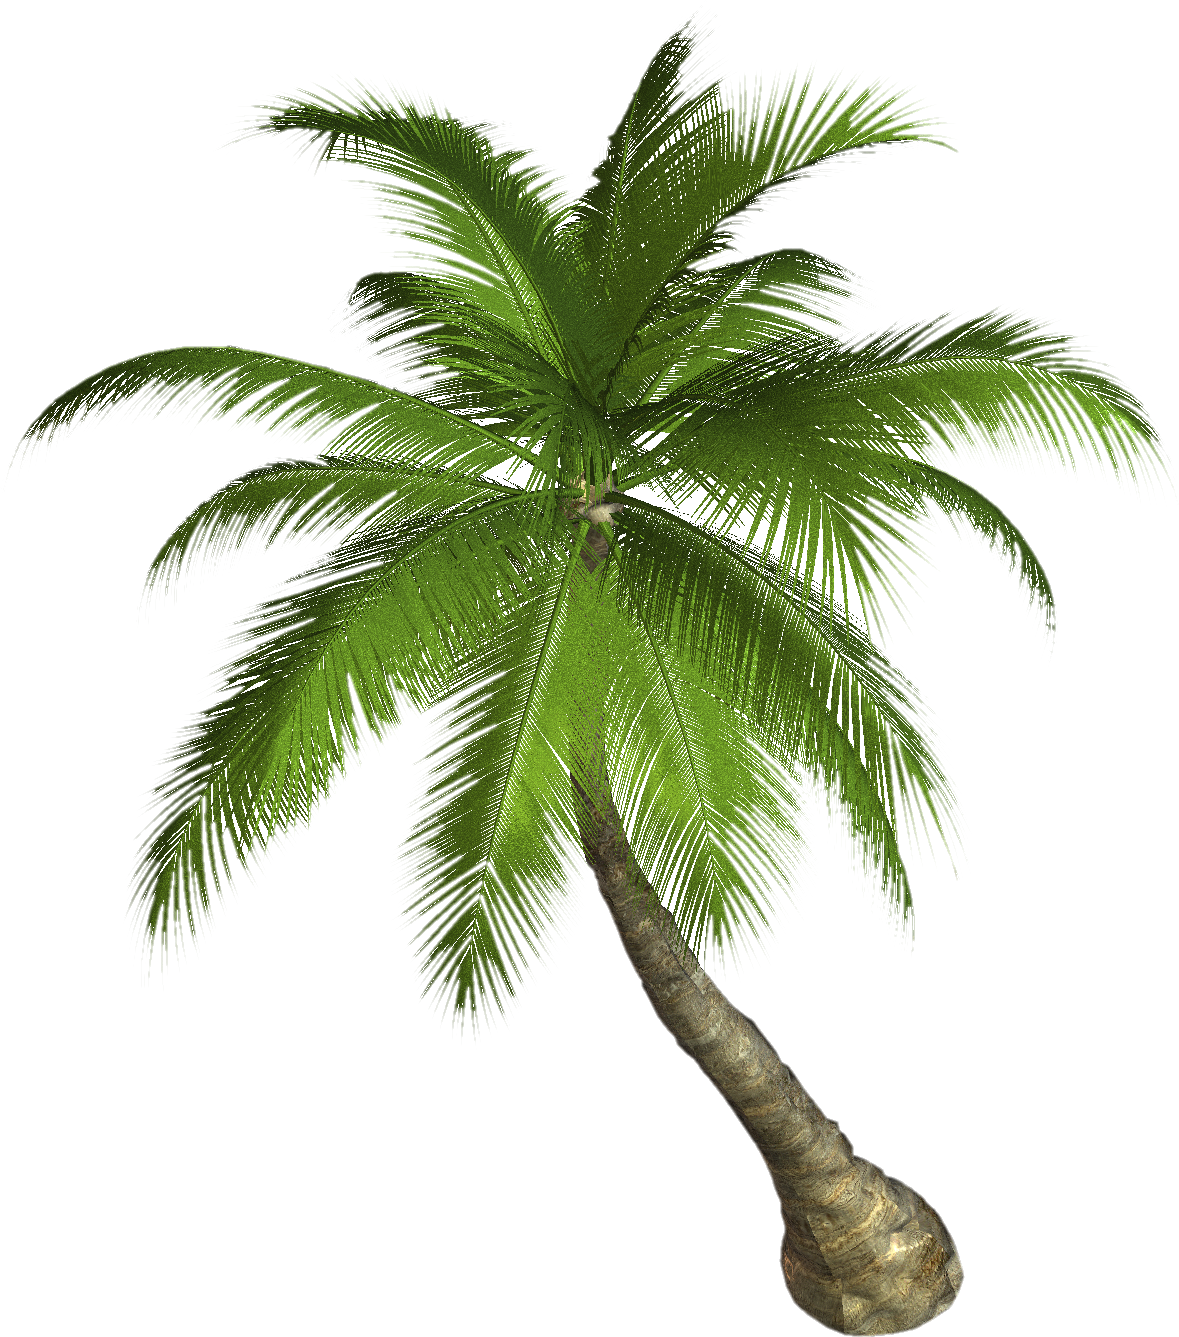 Date palm tree clipart graphic freeuse download Palm tree PNG images, download free pictures graphic freeuse download